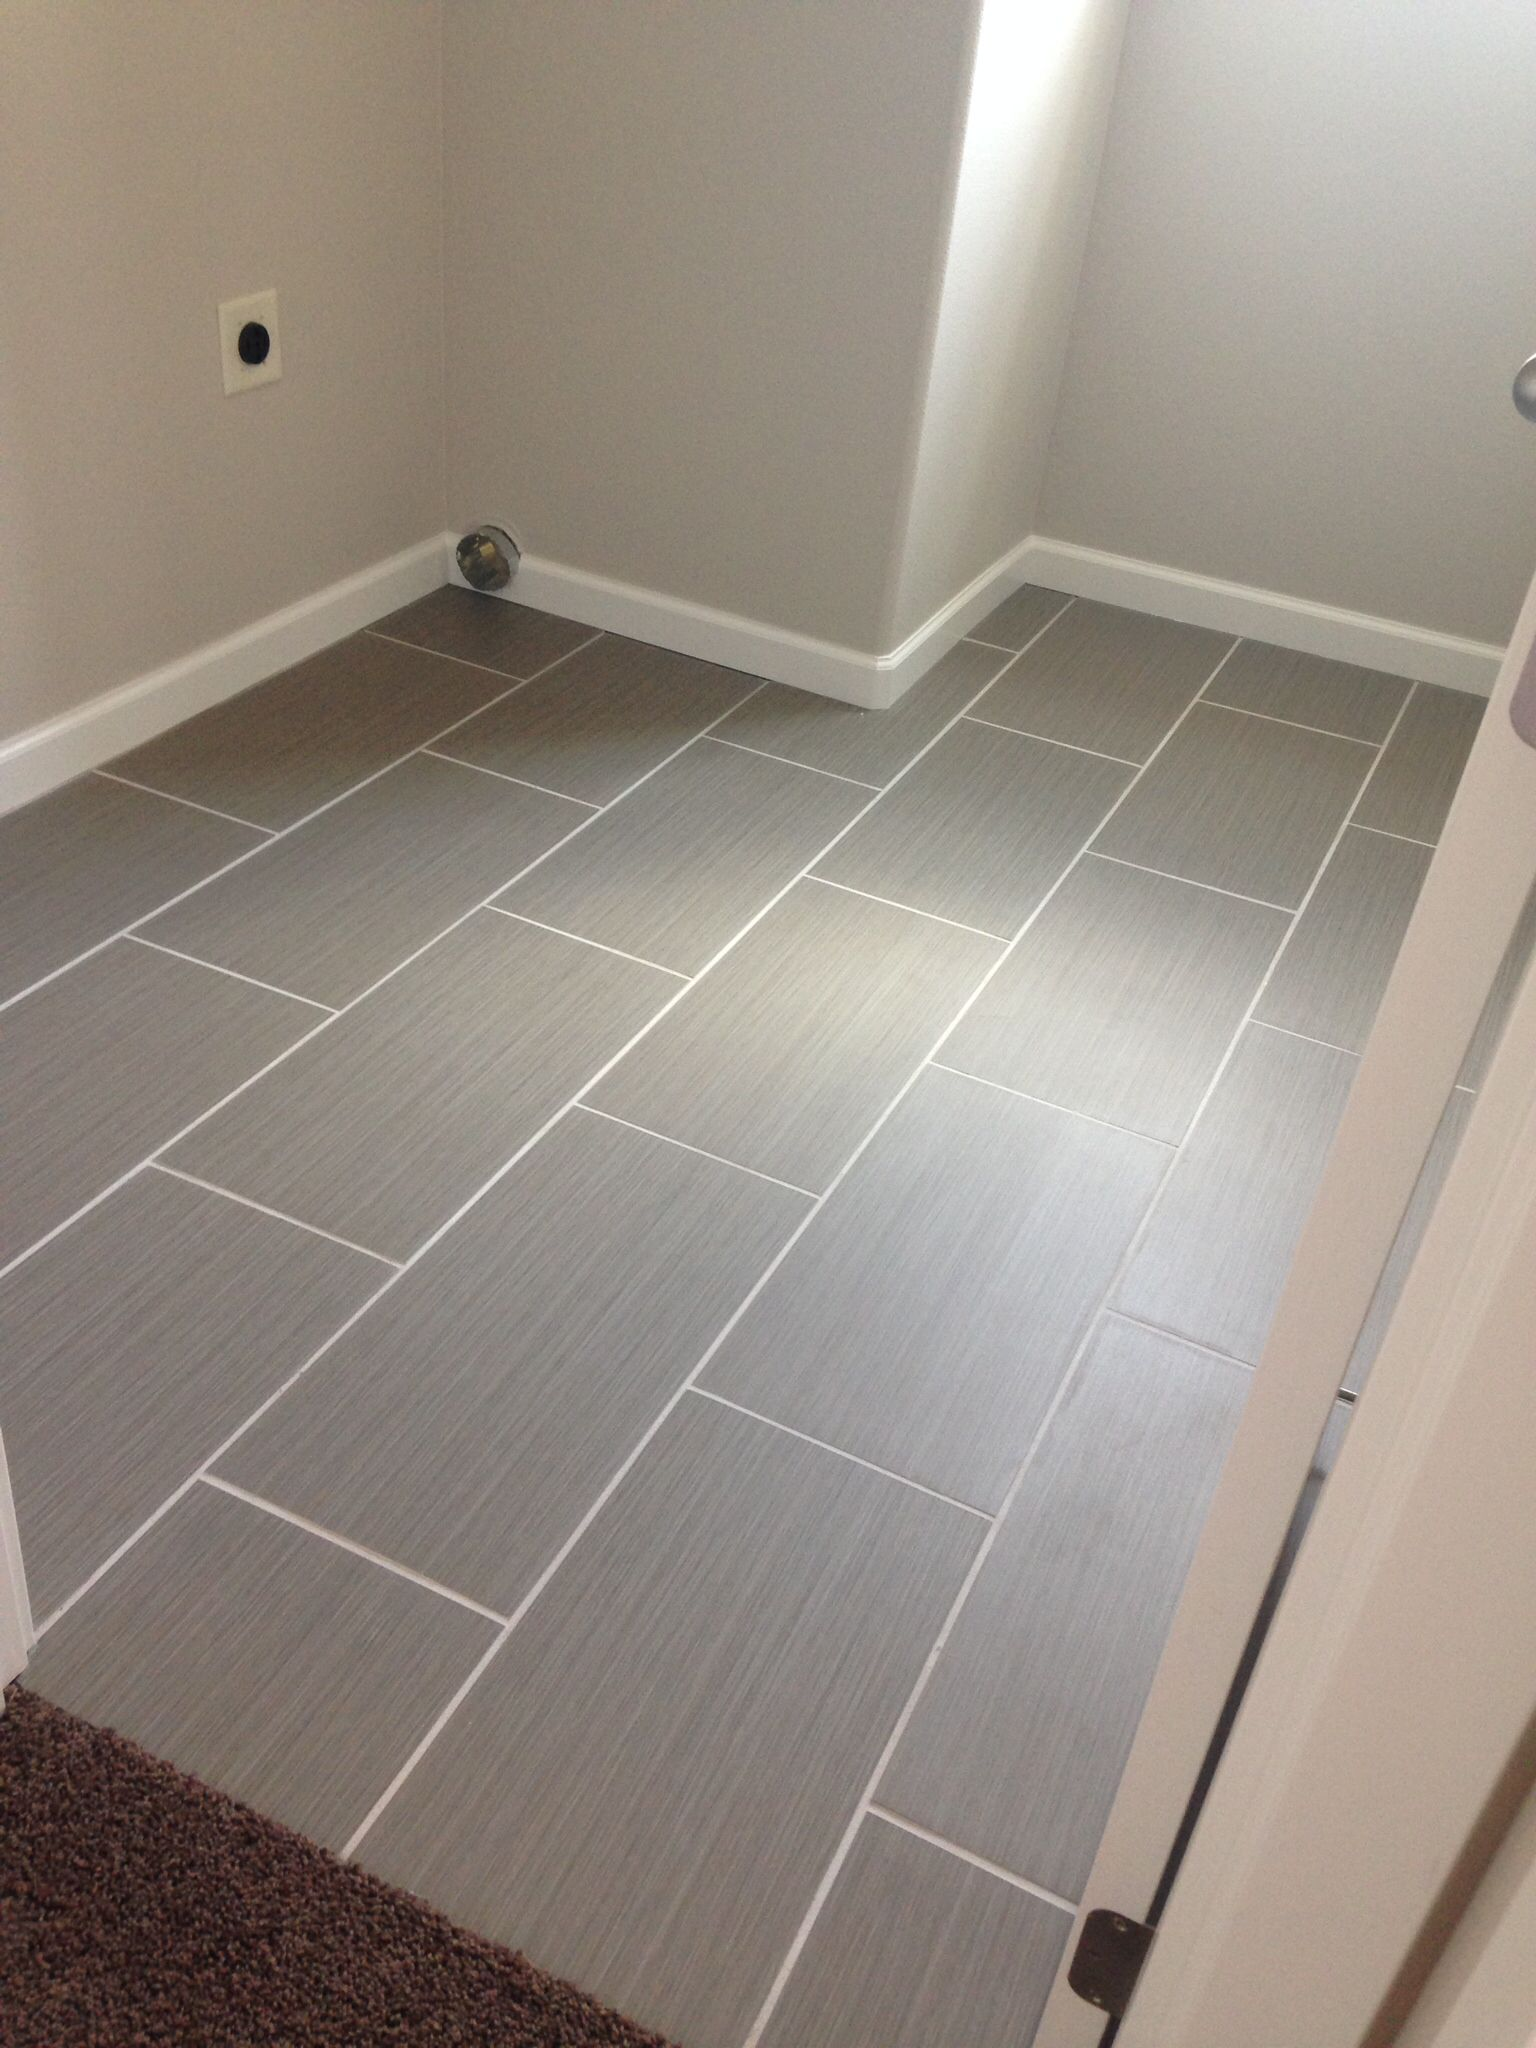 Gray Tile From Costco 721343 Neo 1 2 Porcelain